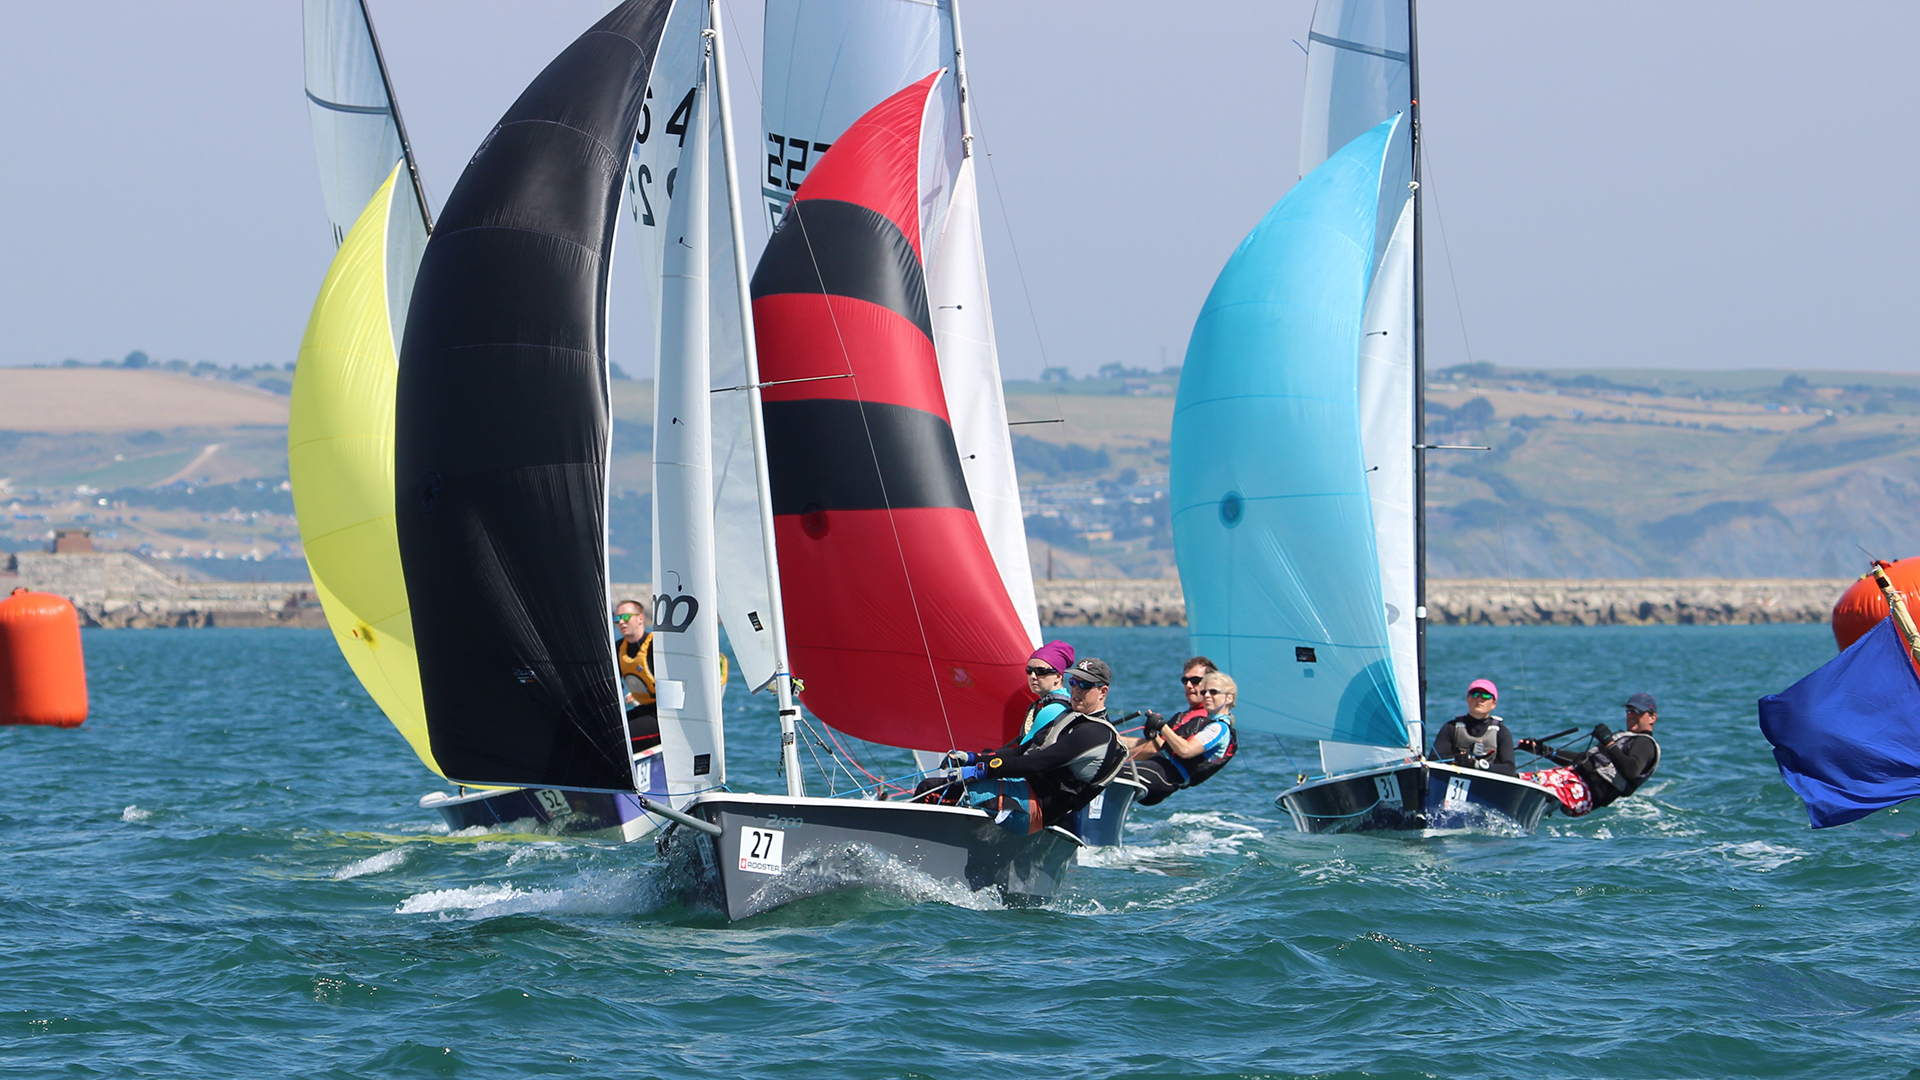 2000 National Championships, Weymouth 2015